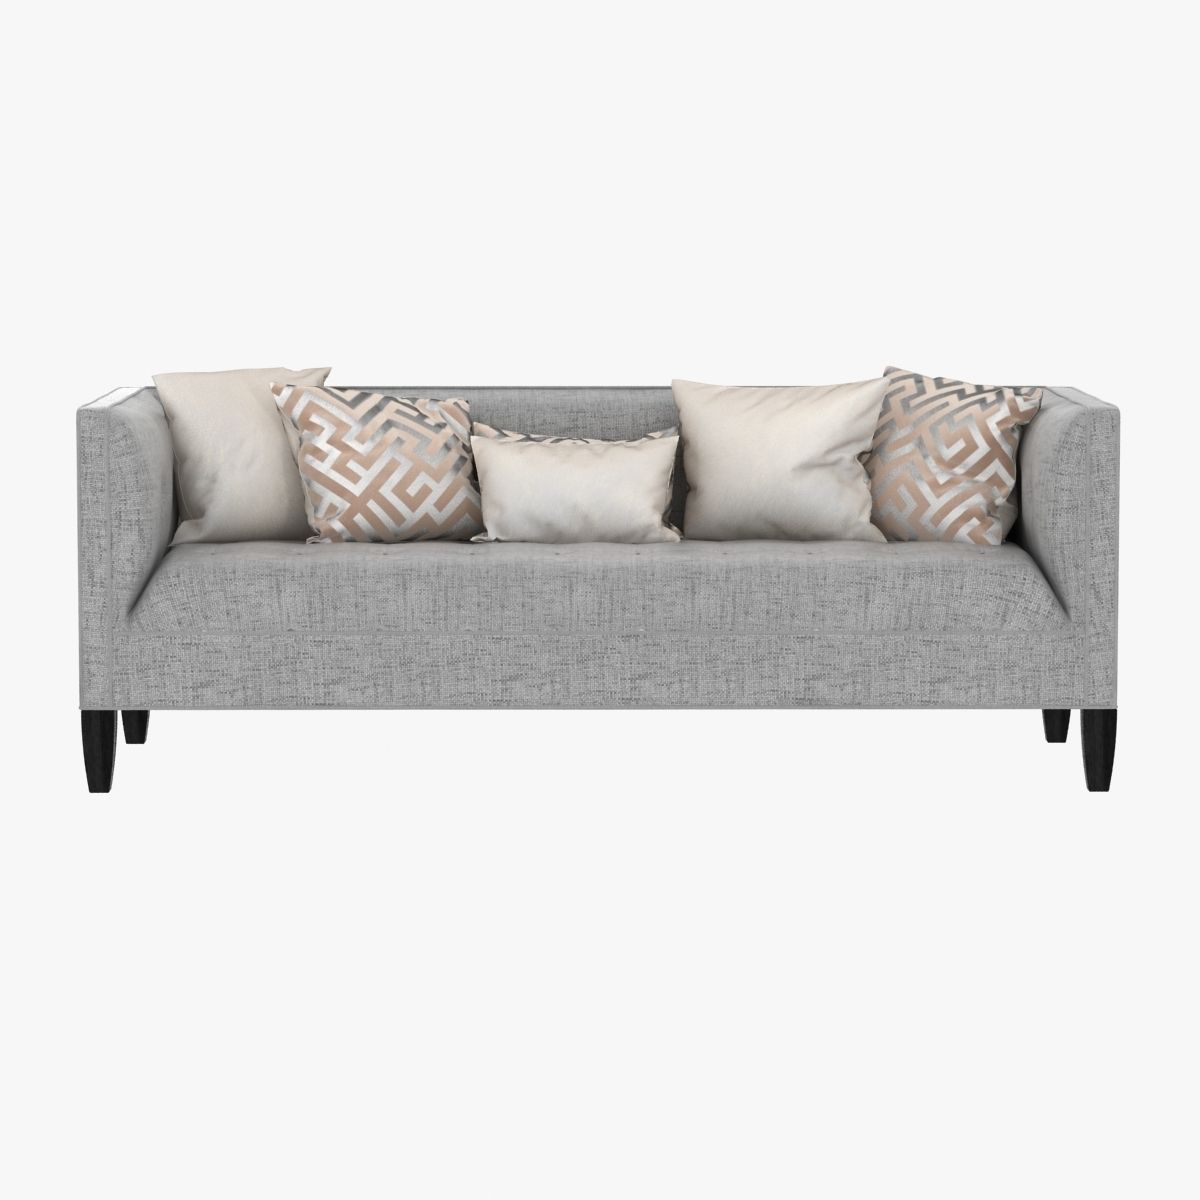 Mitchell Gold Bob Williams Kennedy Sofa 3d Model Max Obj 3ds Fbx Mtl ...